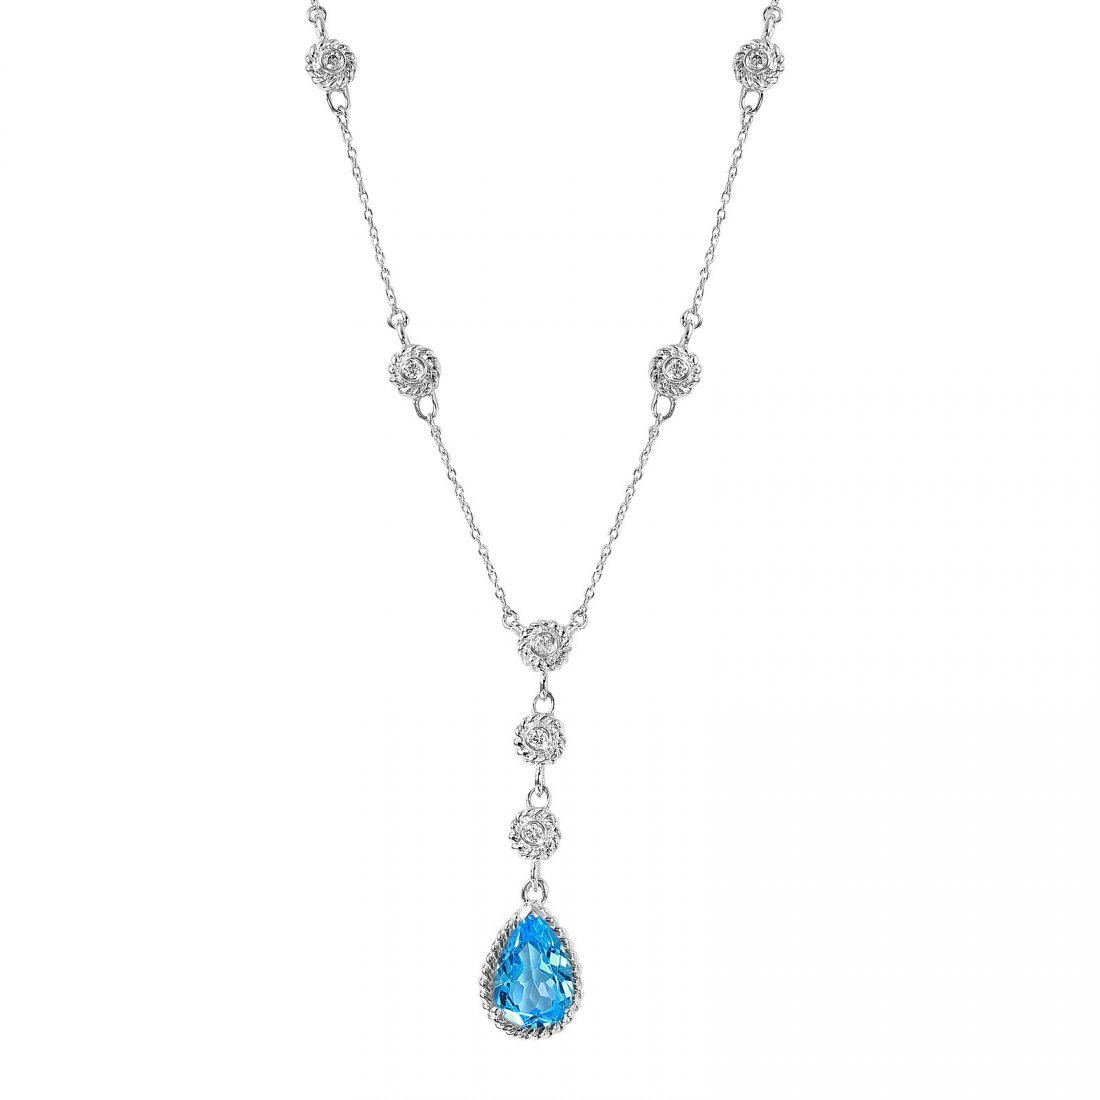 14KT White Gold Topaz and Diamond Necklace